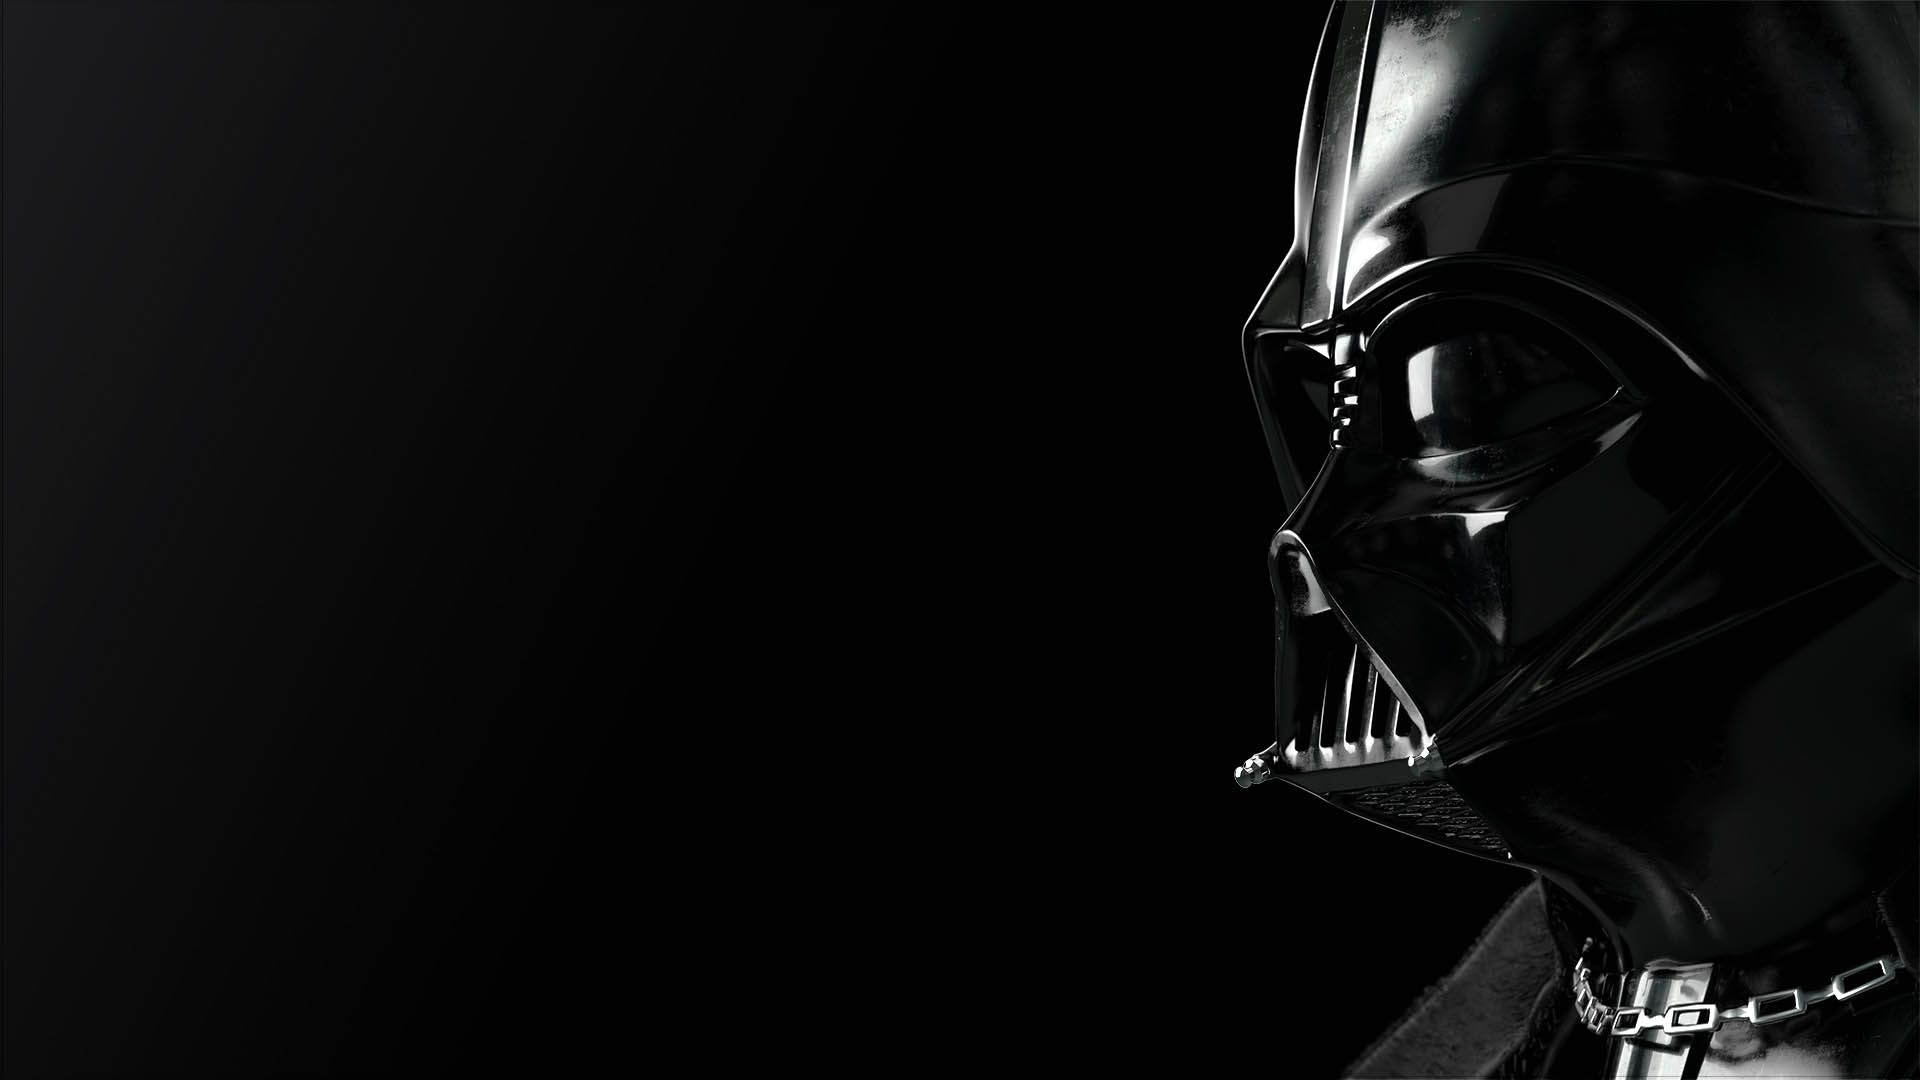 Wallpaper Uploaded On 2015 12 24 00 20 53z By 1920 X 1080 Full Hd Star Wars Wallpaper Darth Vader Wallpaper Star Wars Darth Vader